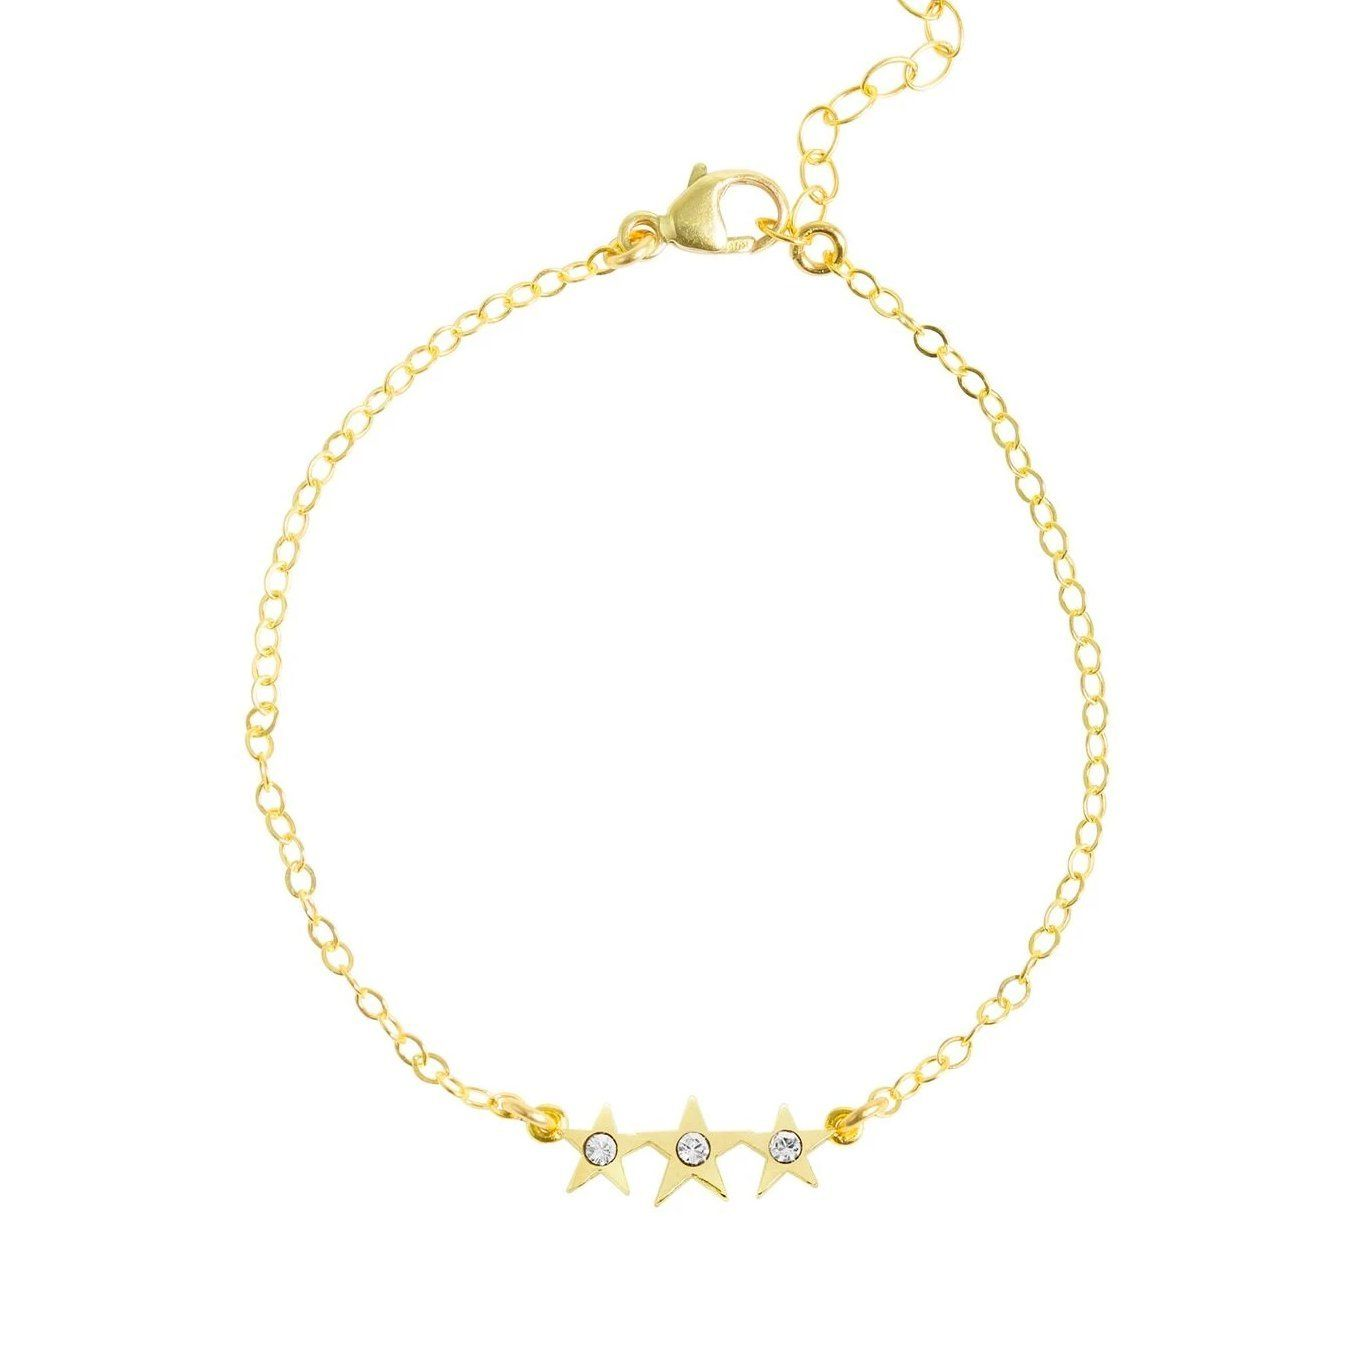 Up close image of the gold Starburst Bracelet with tiny crystals & stars.